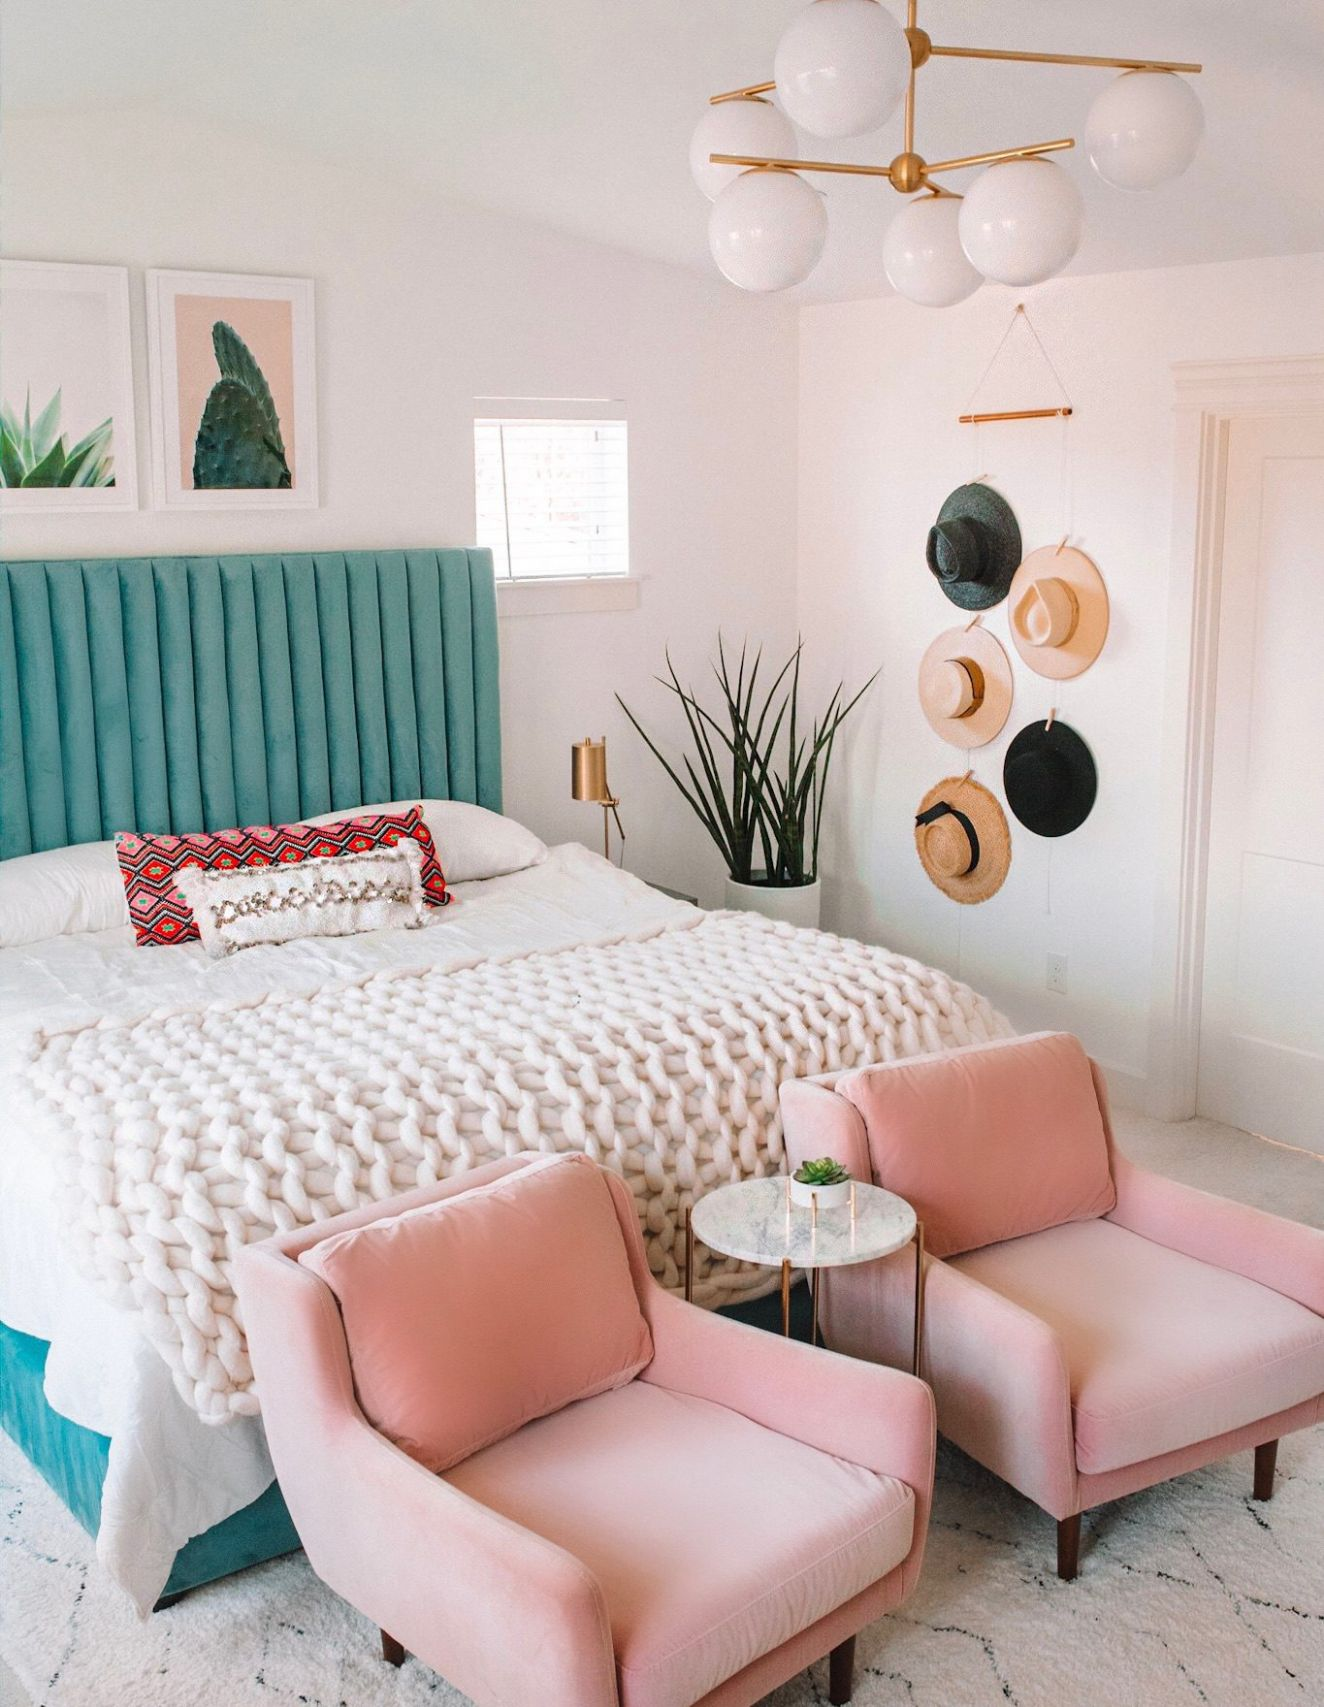 How To Create a Relaxing Bedroom Sanctuary + Bedroom Decor Ideas - bedroom ideas relaxing